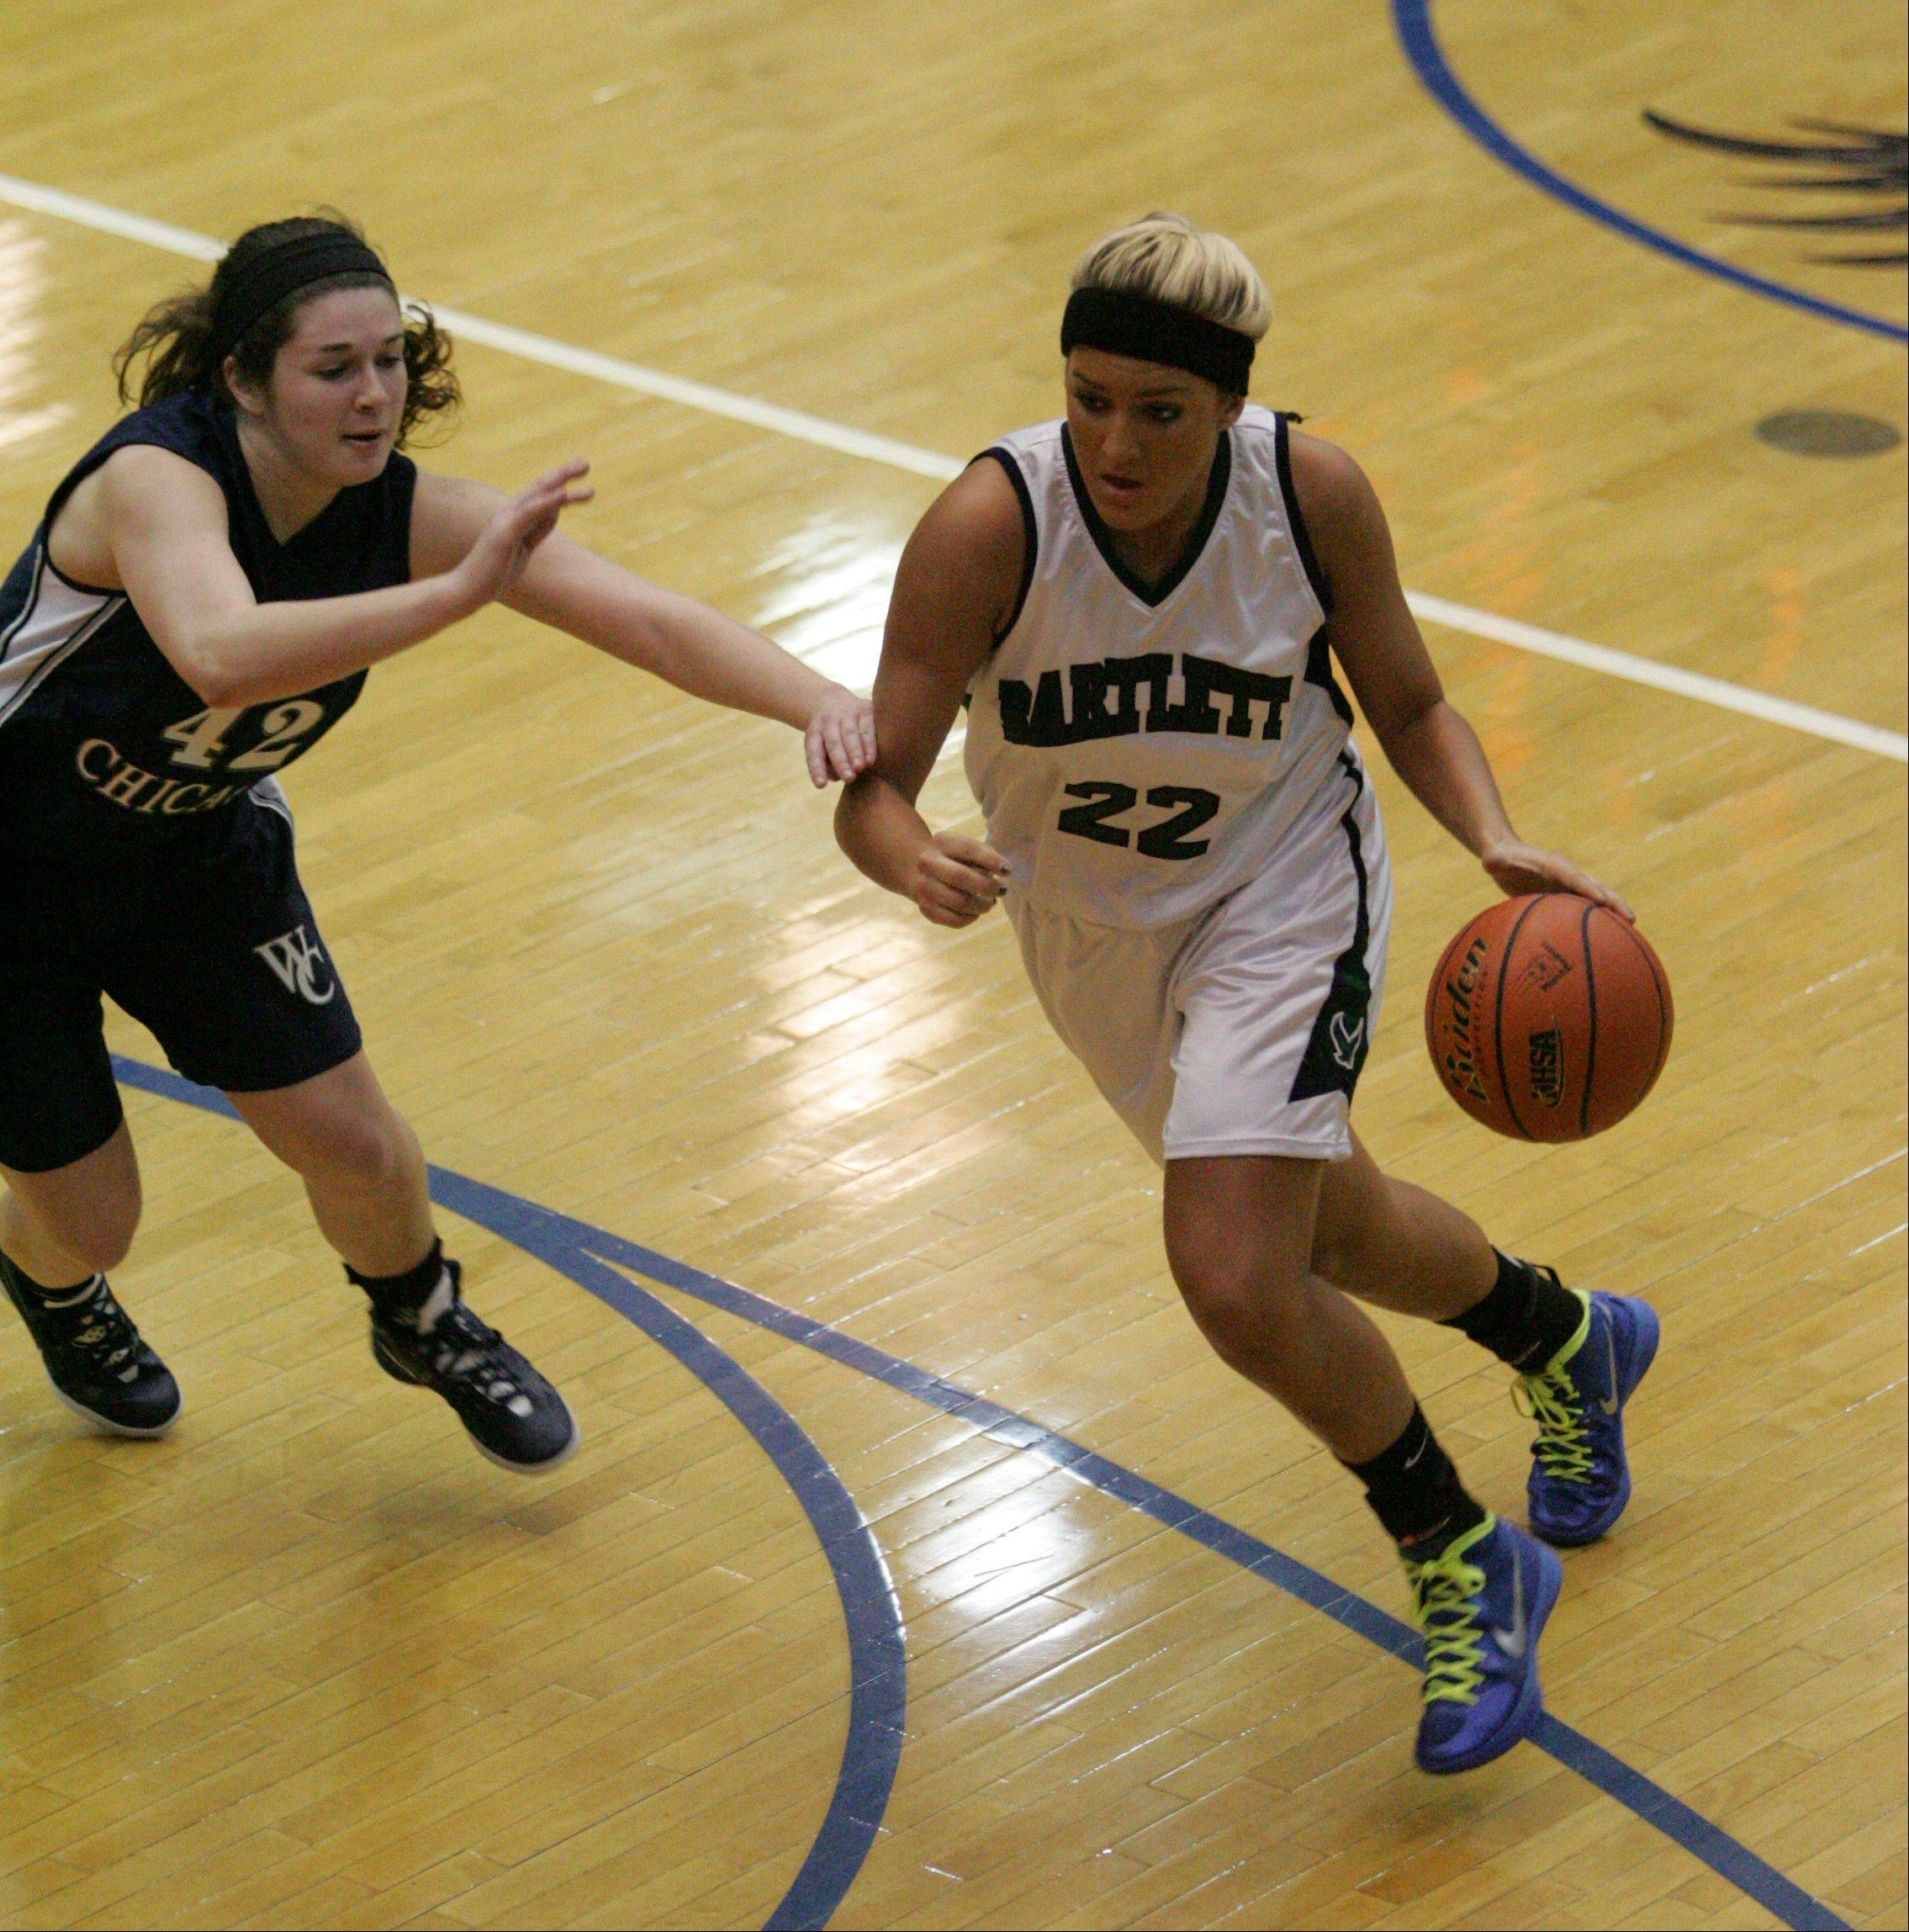 Bartlett and senior Haley Videckis (22) will take on DeKalb at 8 p.m. Monday in the Class 4A Elgin supersectional.